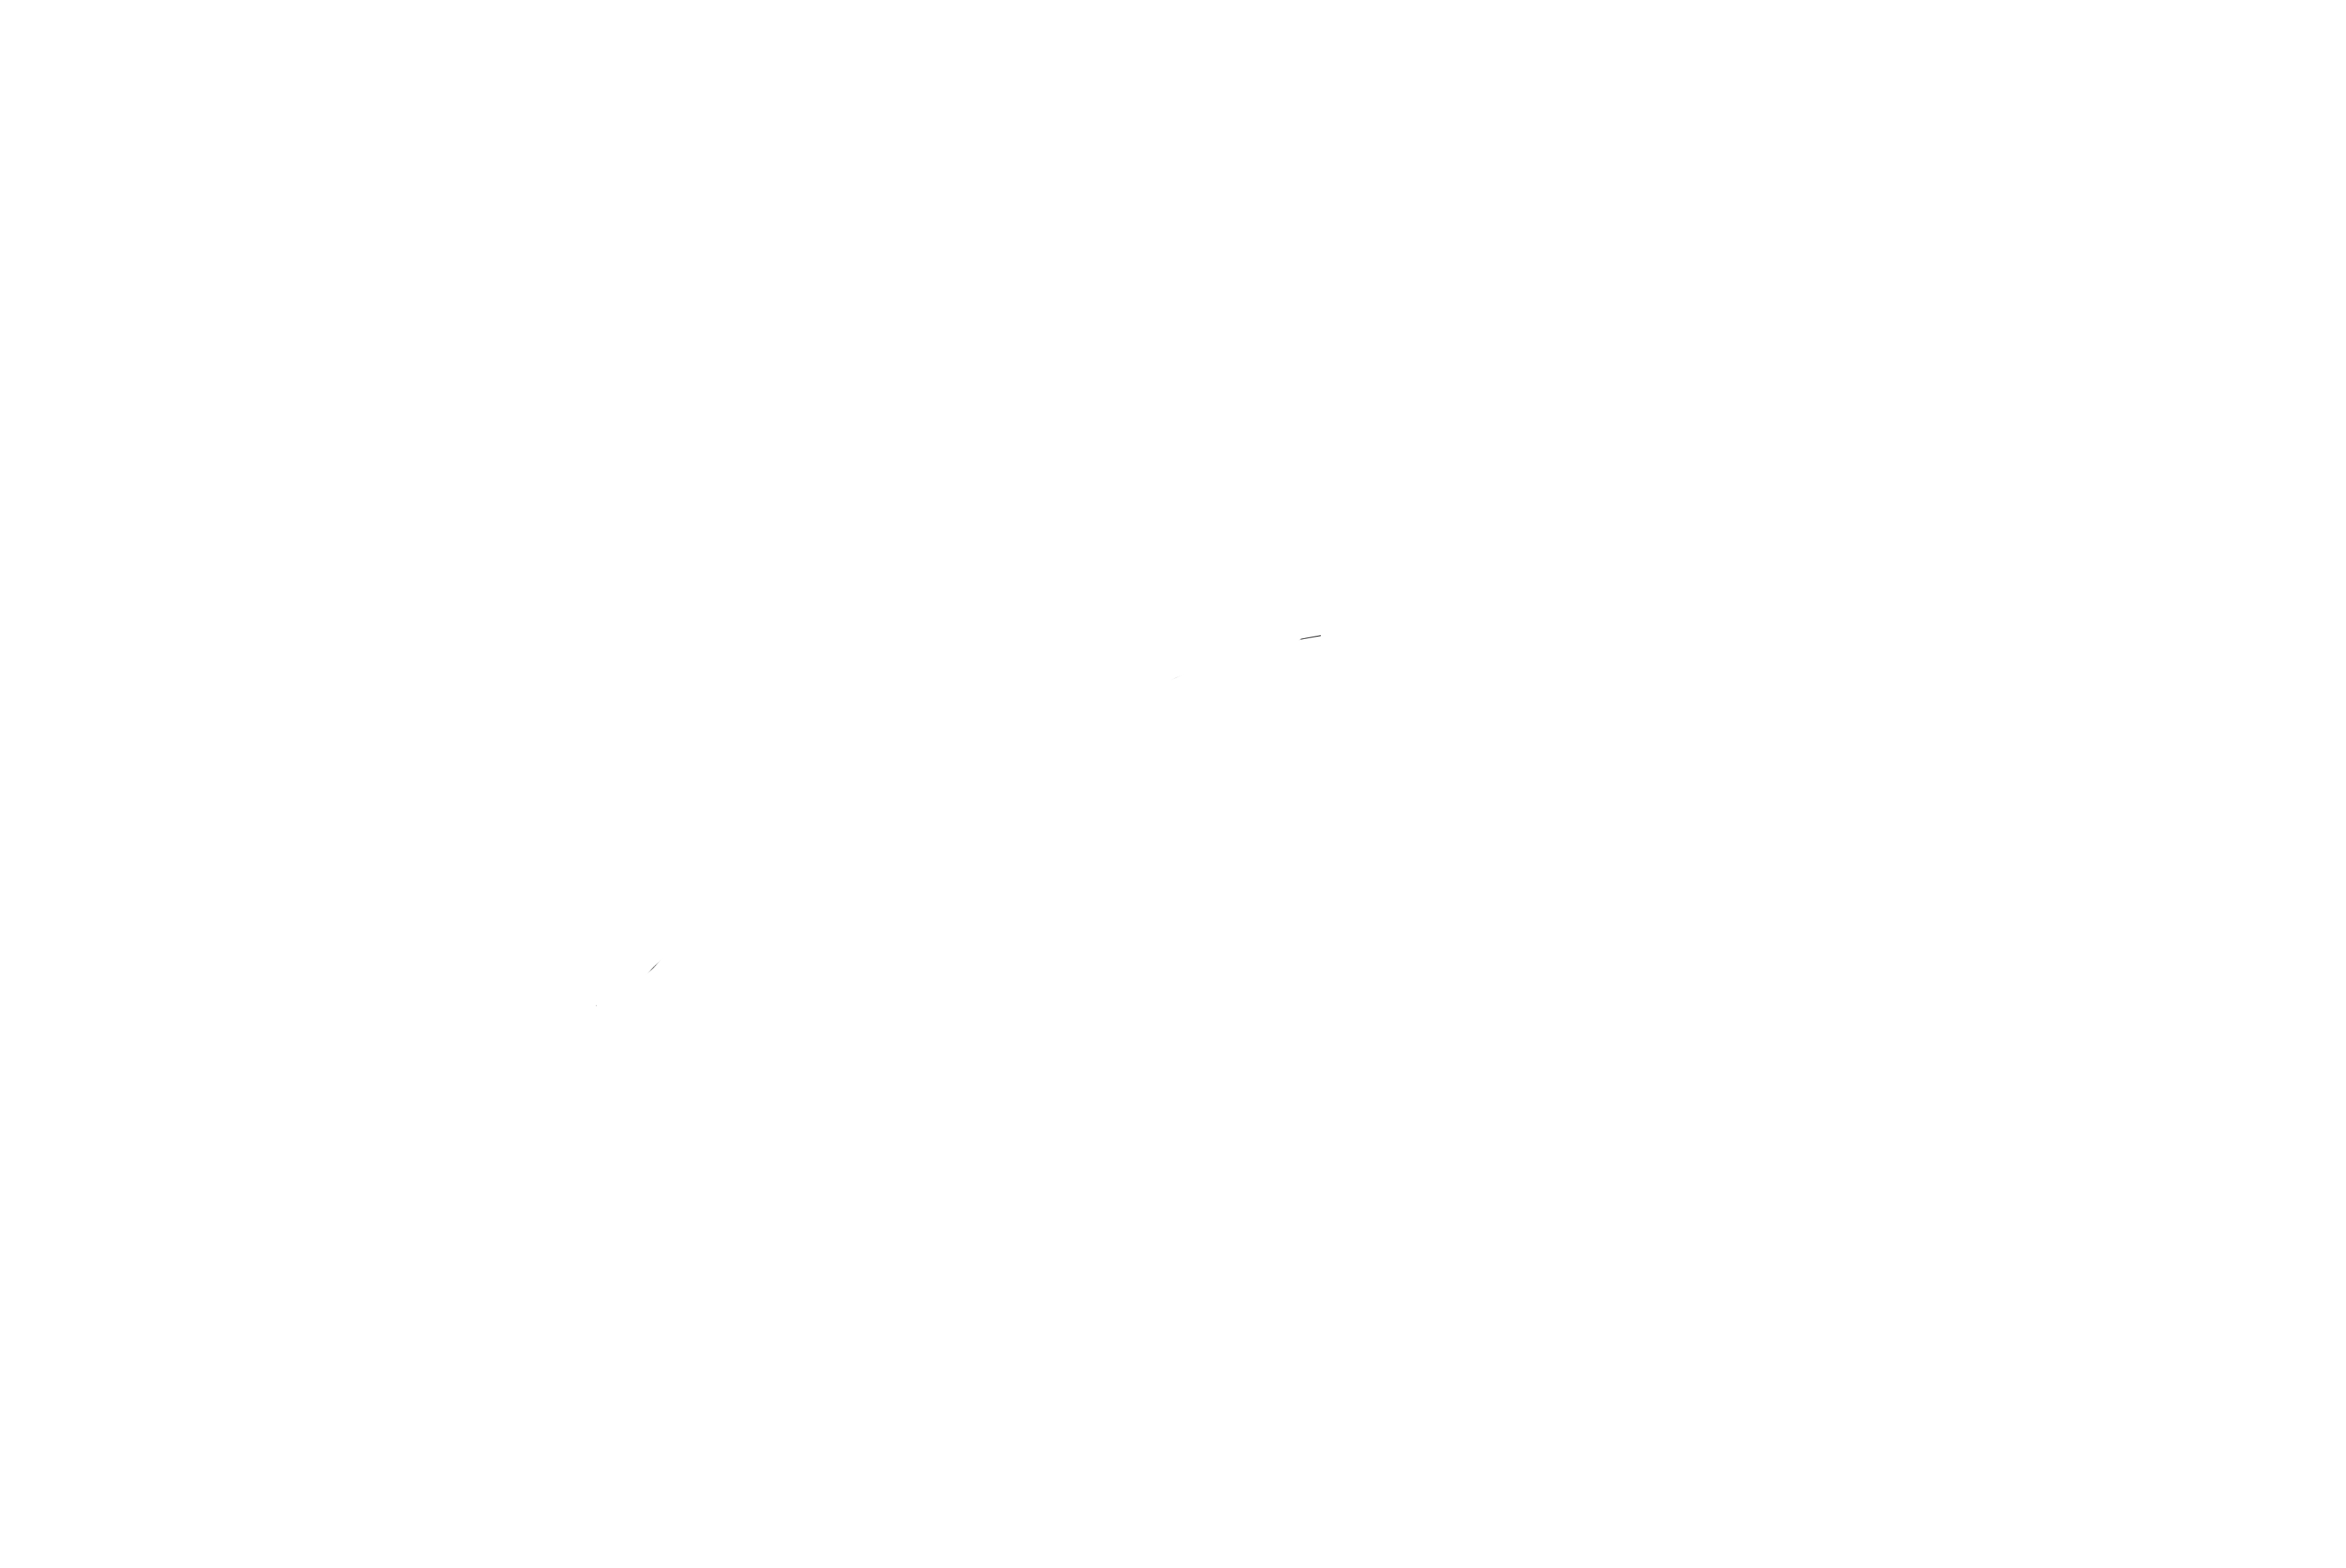 Grain background png. Scratches transparent pictures free